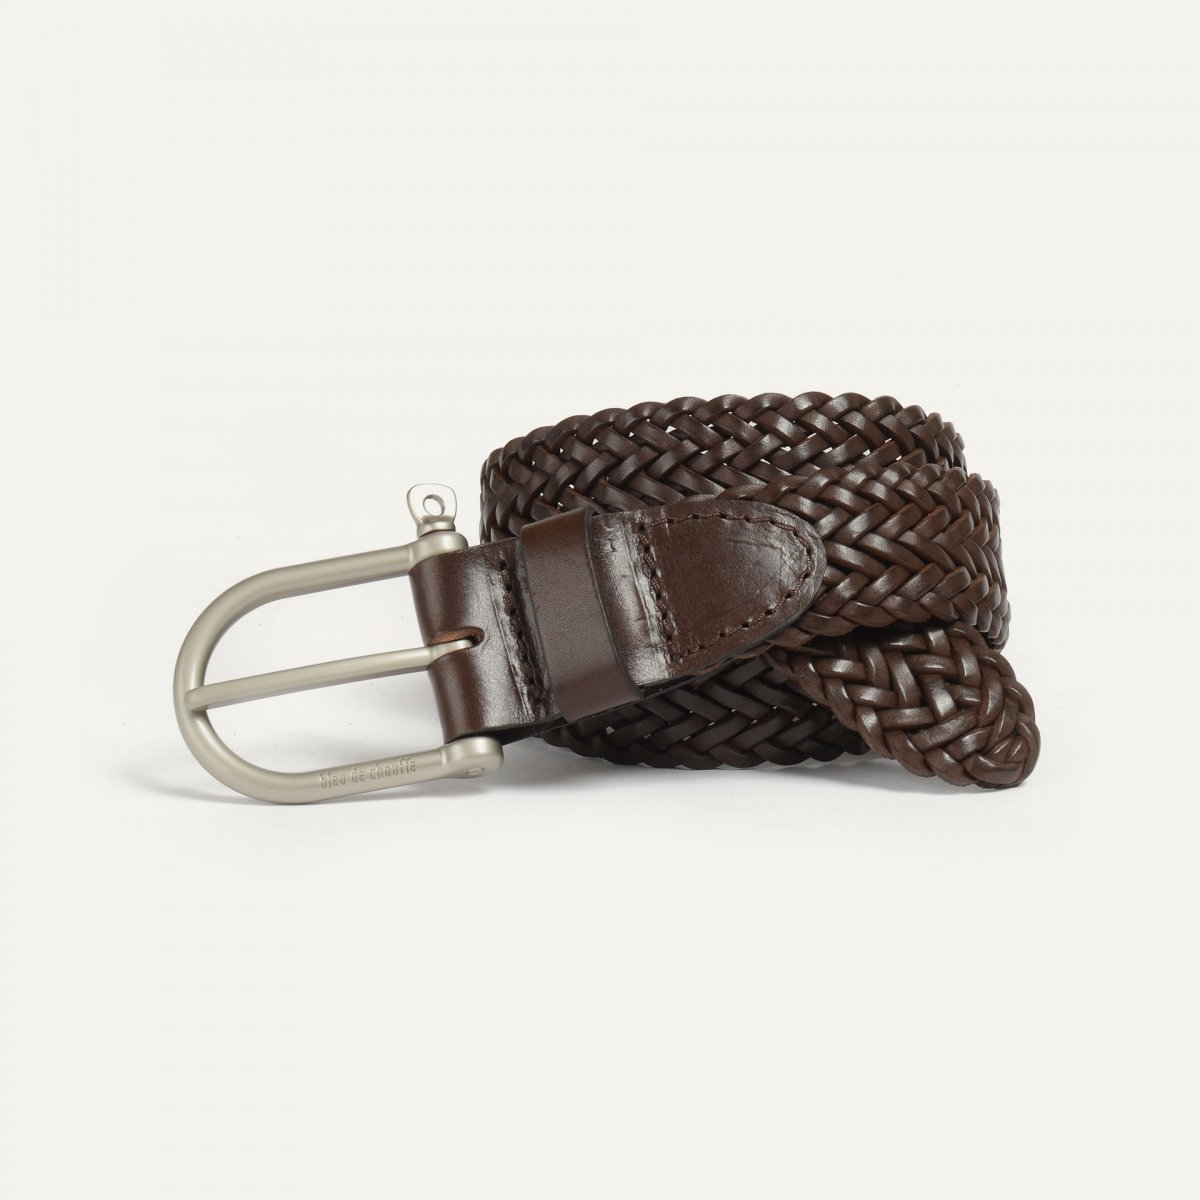 Manille Belt / braided leather - Expresso (image n°1)